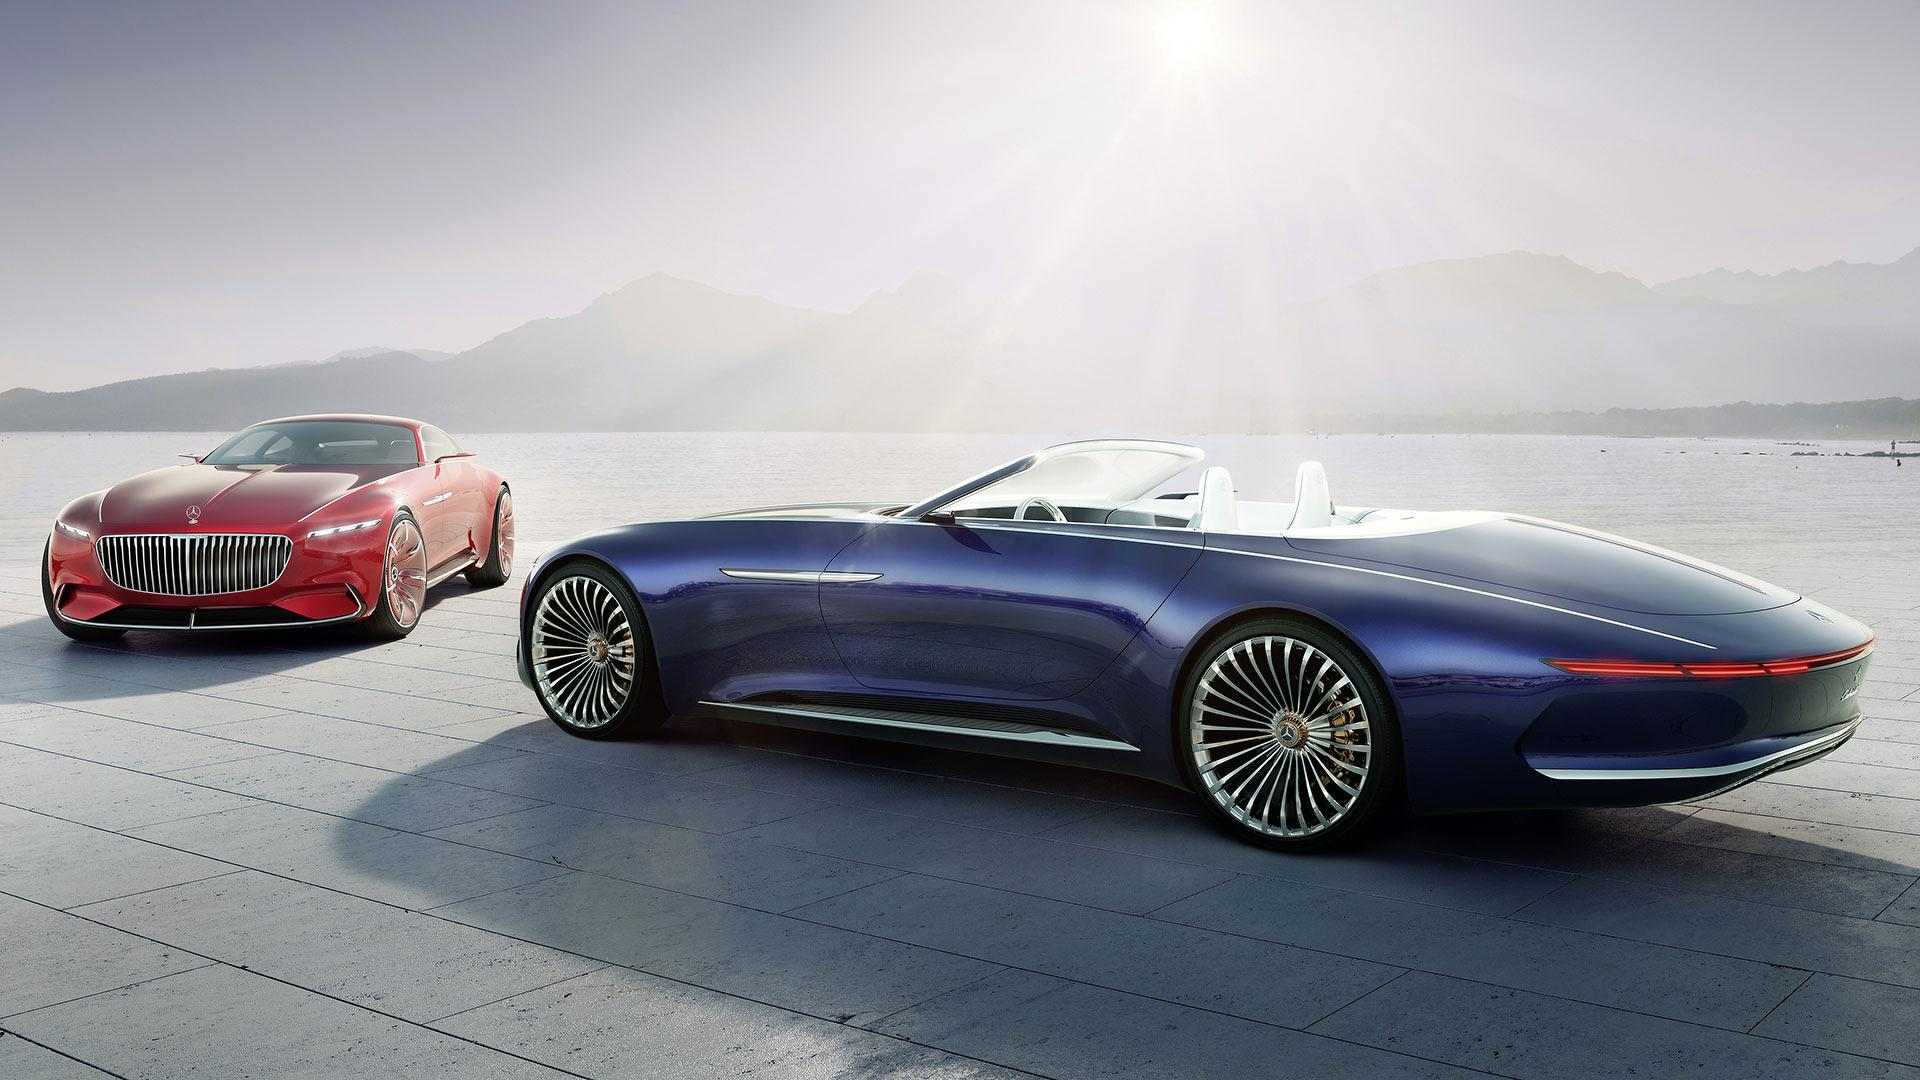 Vision Mercedes-Maybach 6 Cabriolet e Coupé